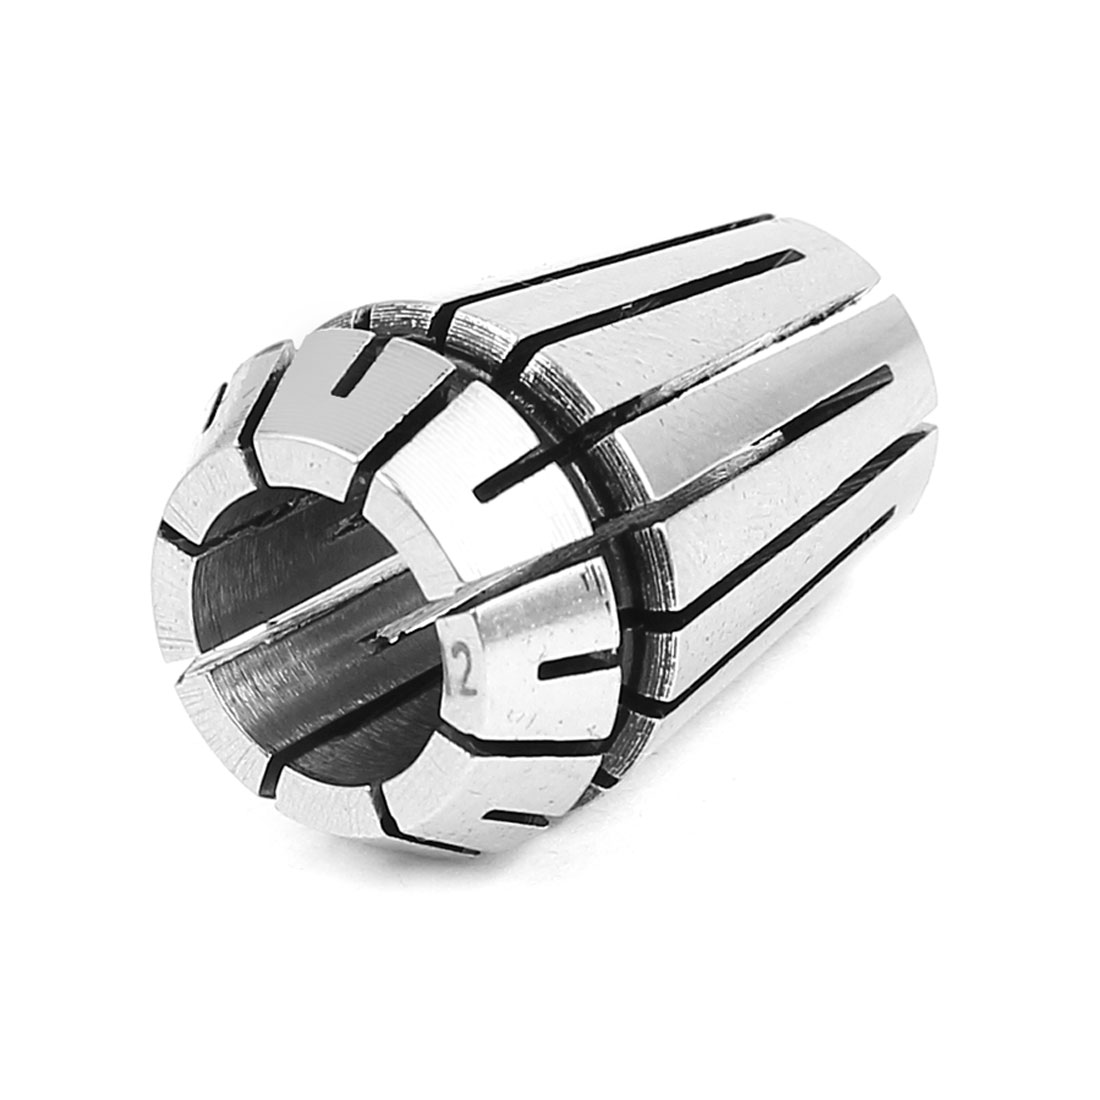 ER20 12mm Clamping Dia Engraving Milling Machine Spring Collet